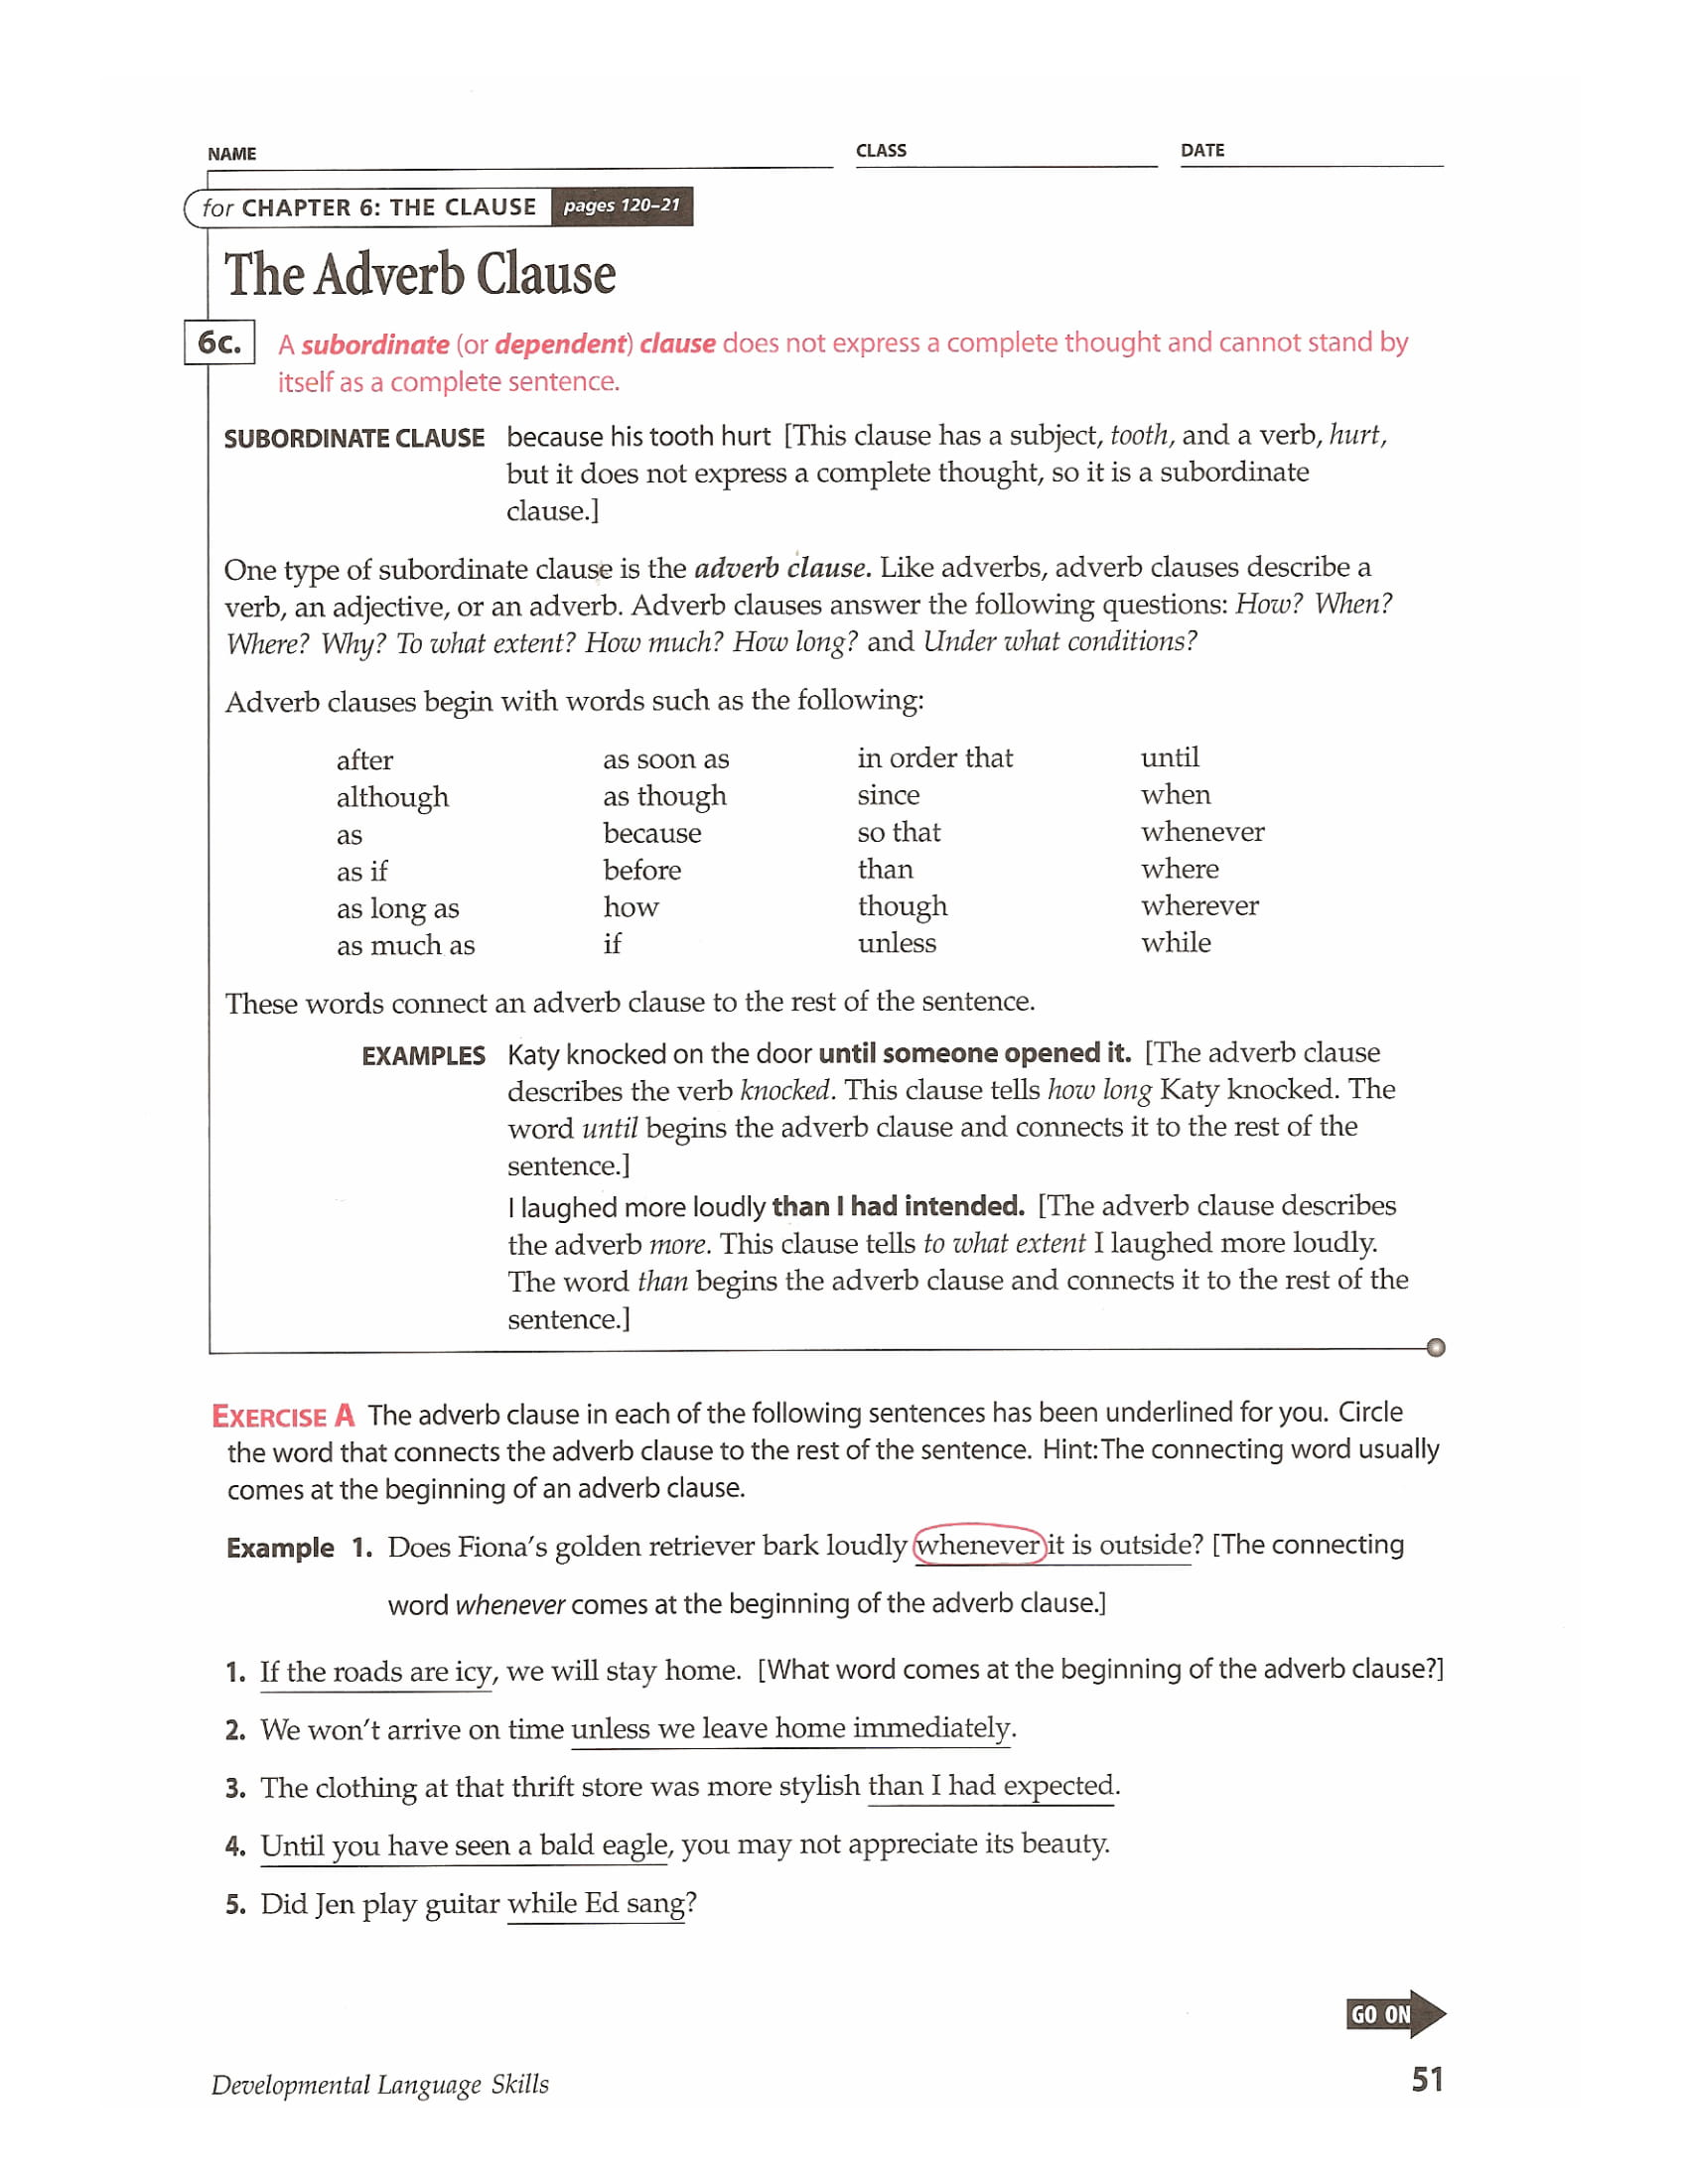 adverb clause discussion and worksheet example